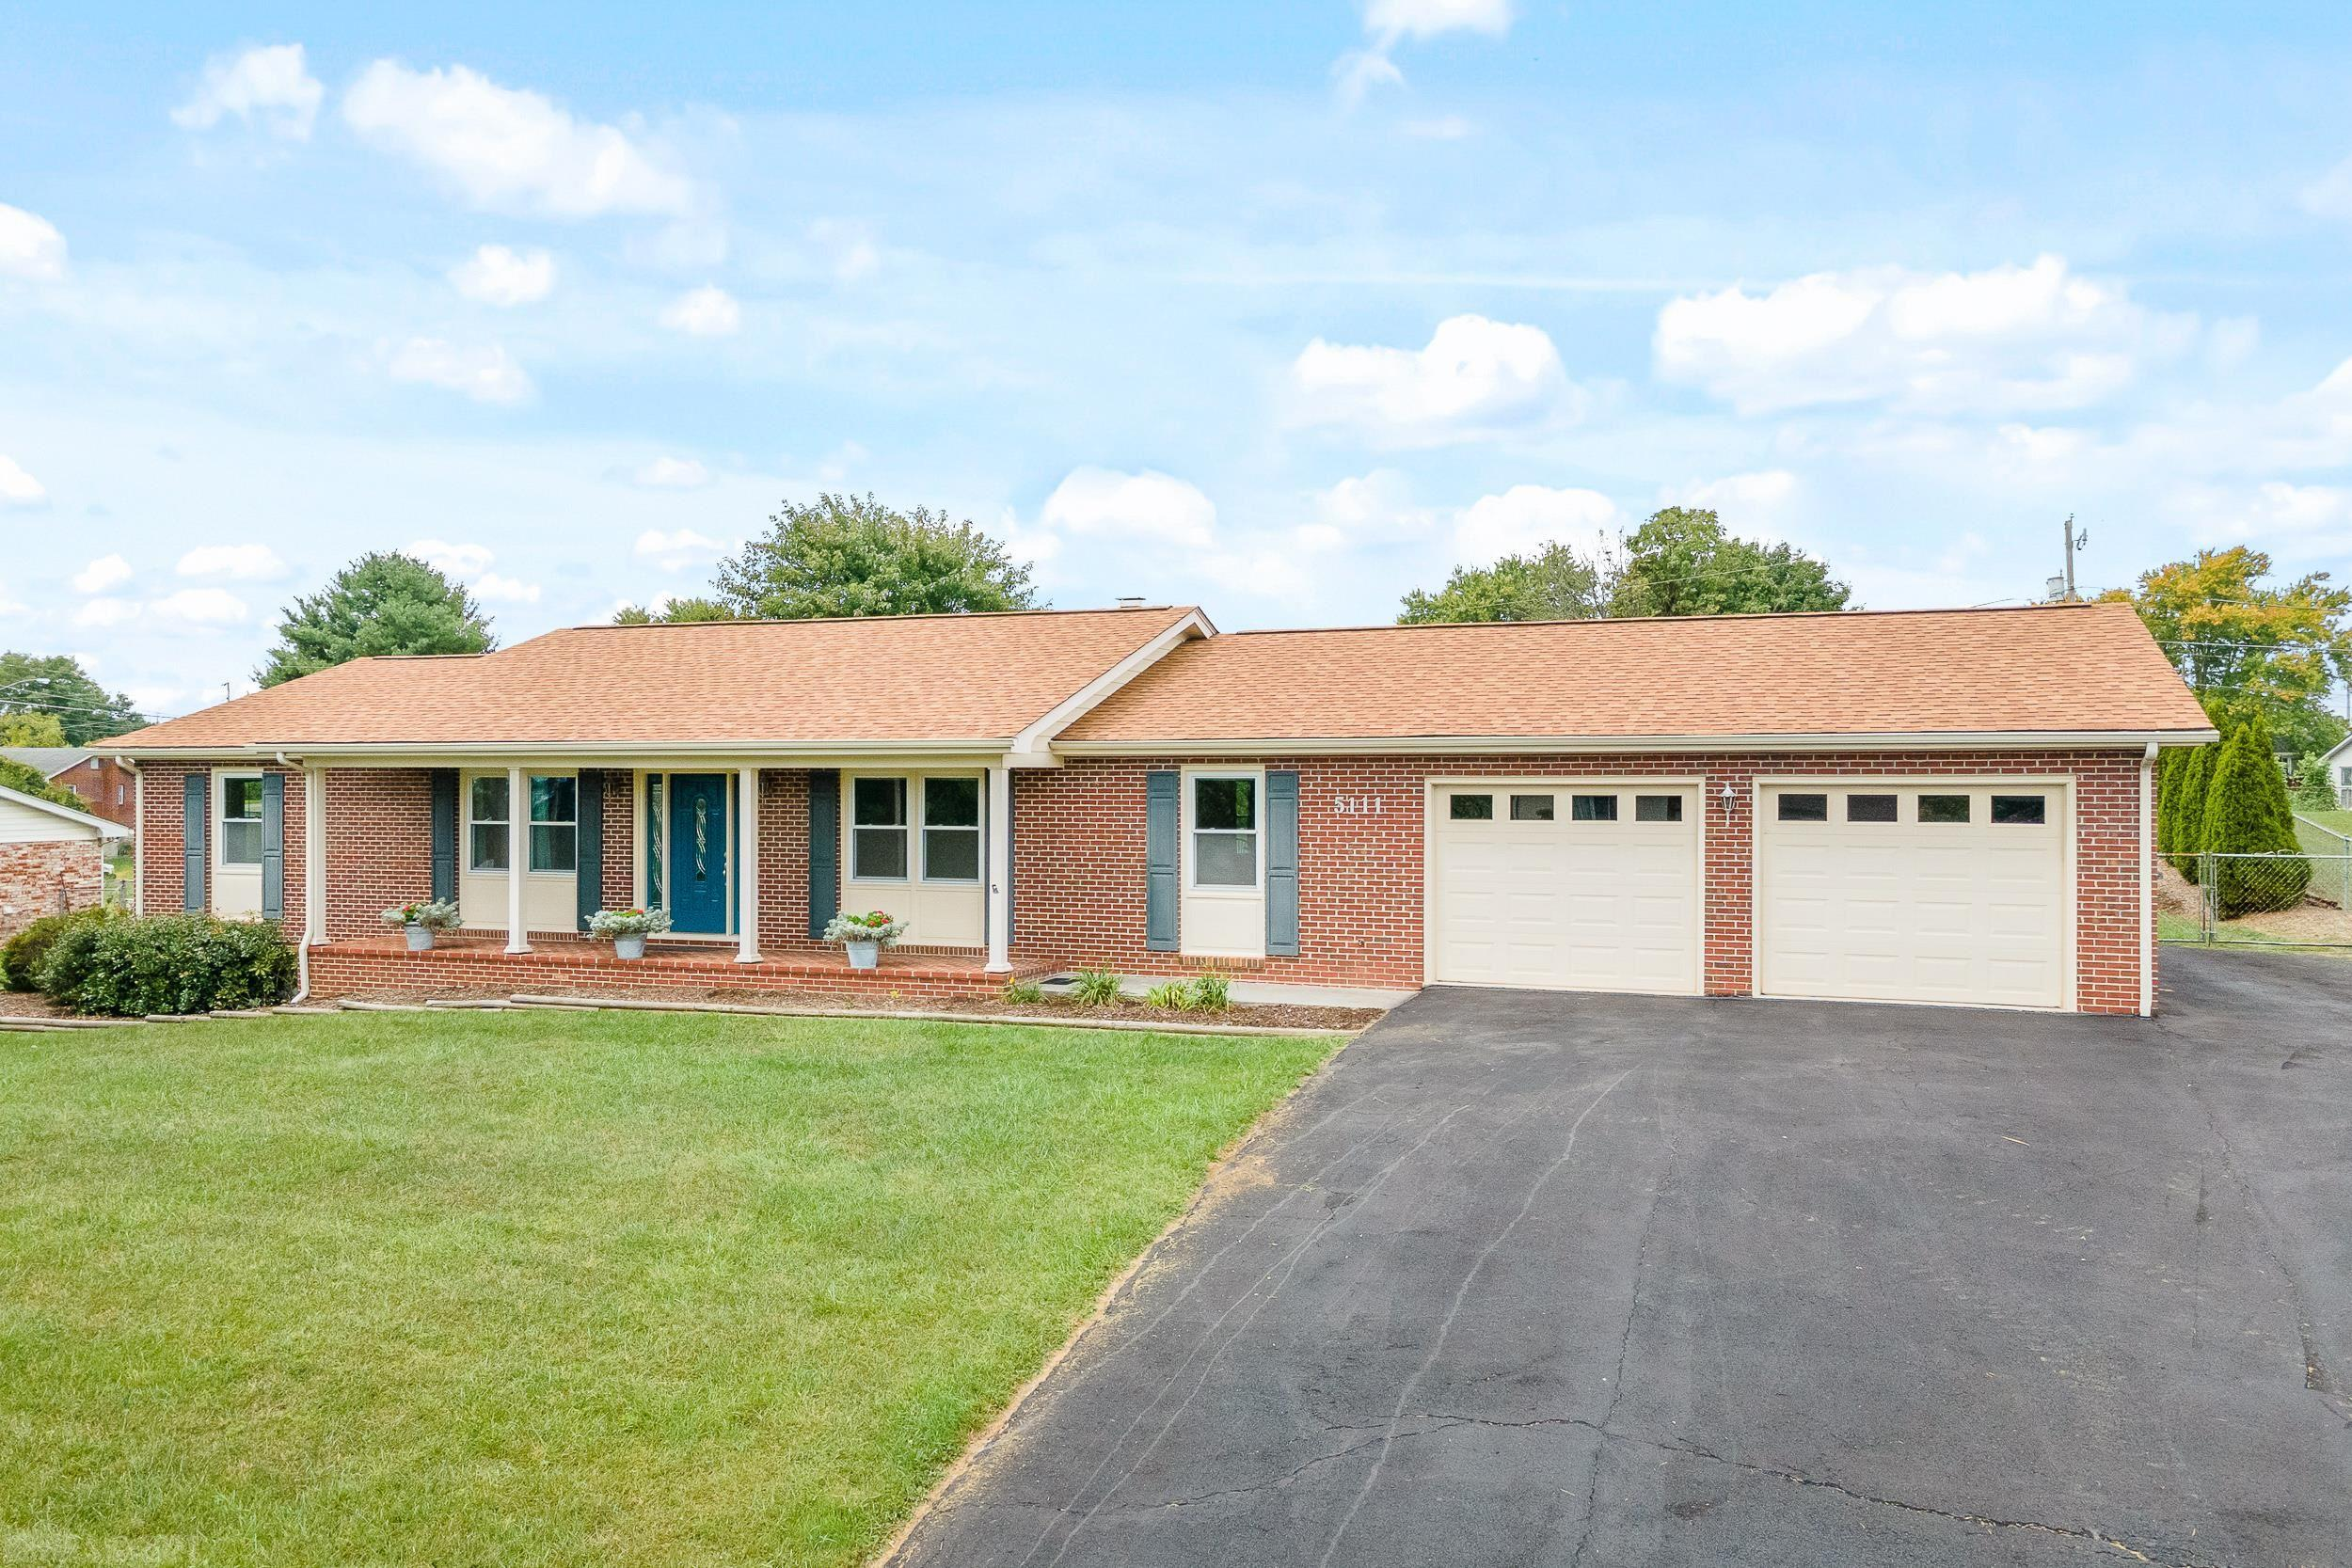 Welcome to a gem of a home! This 3BR/2BA ranch is in the heart of Dublin. Minutes from the interstate and priced to sell. Home has many updates. Two car garage with paved driveway. Plenty of private garden/yard space for entertaining and relaxing. Finished walk out basement with workshop. Option to pick out own flooring available.